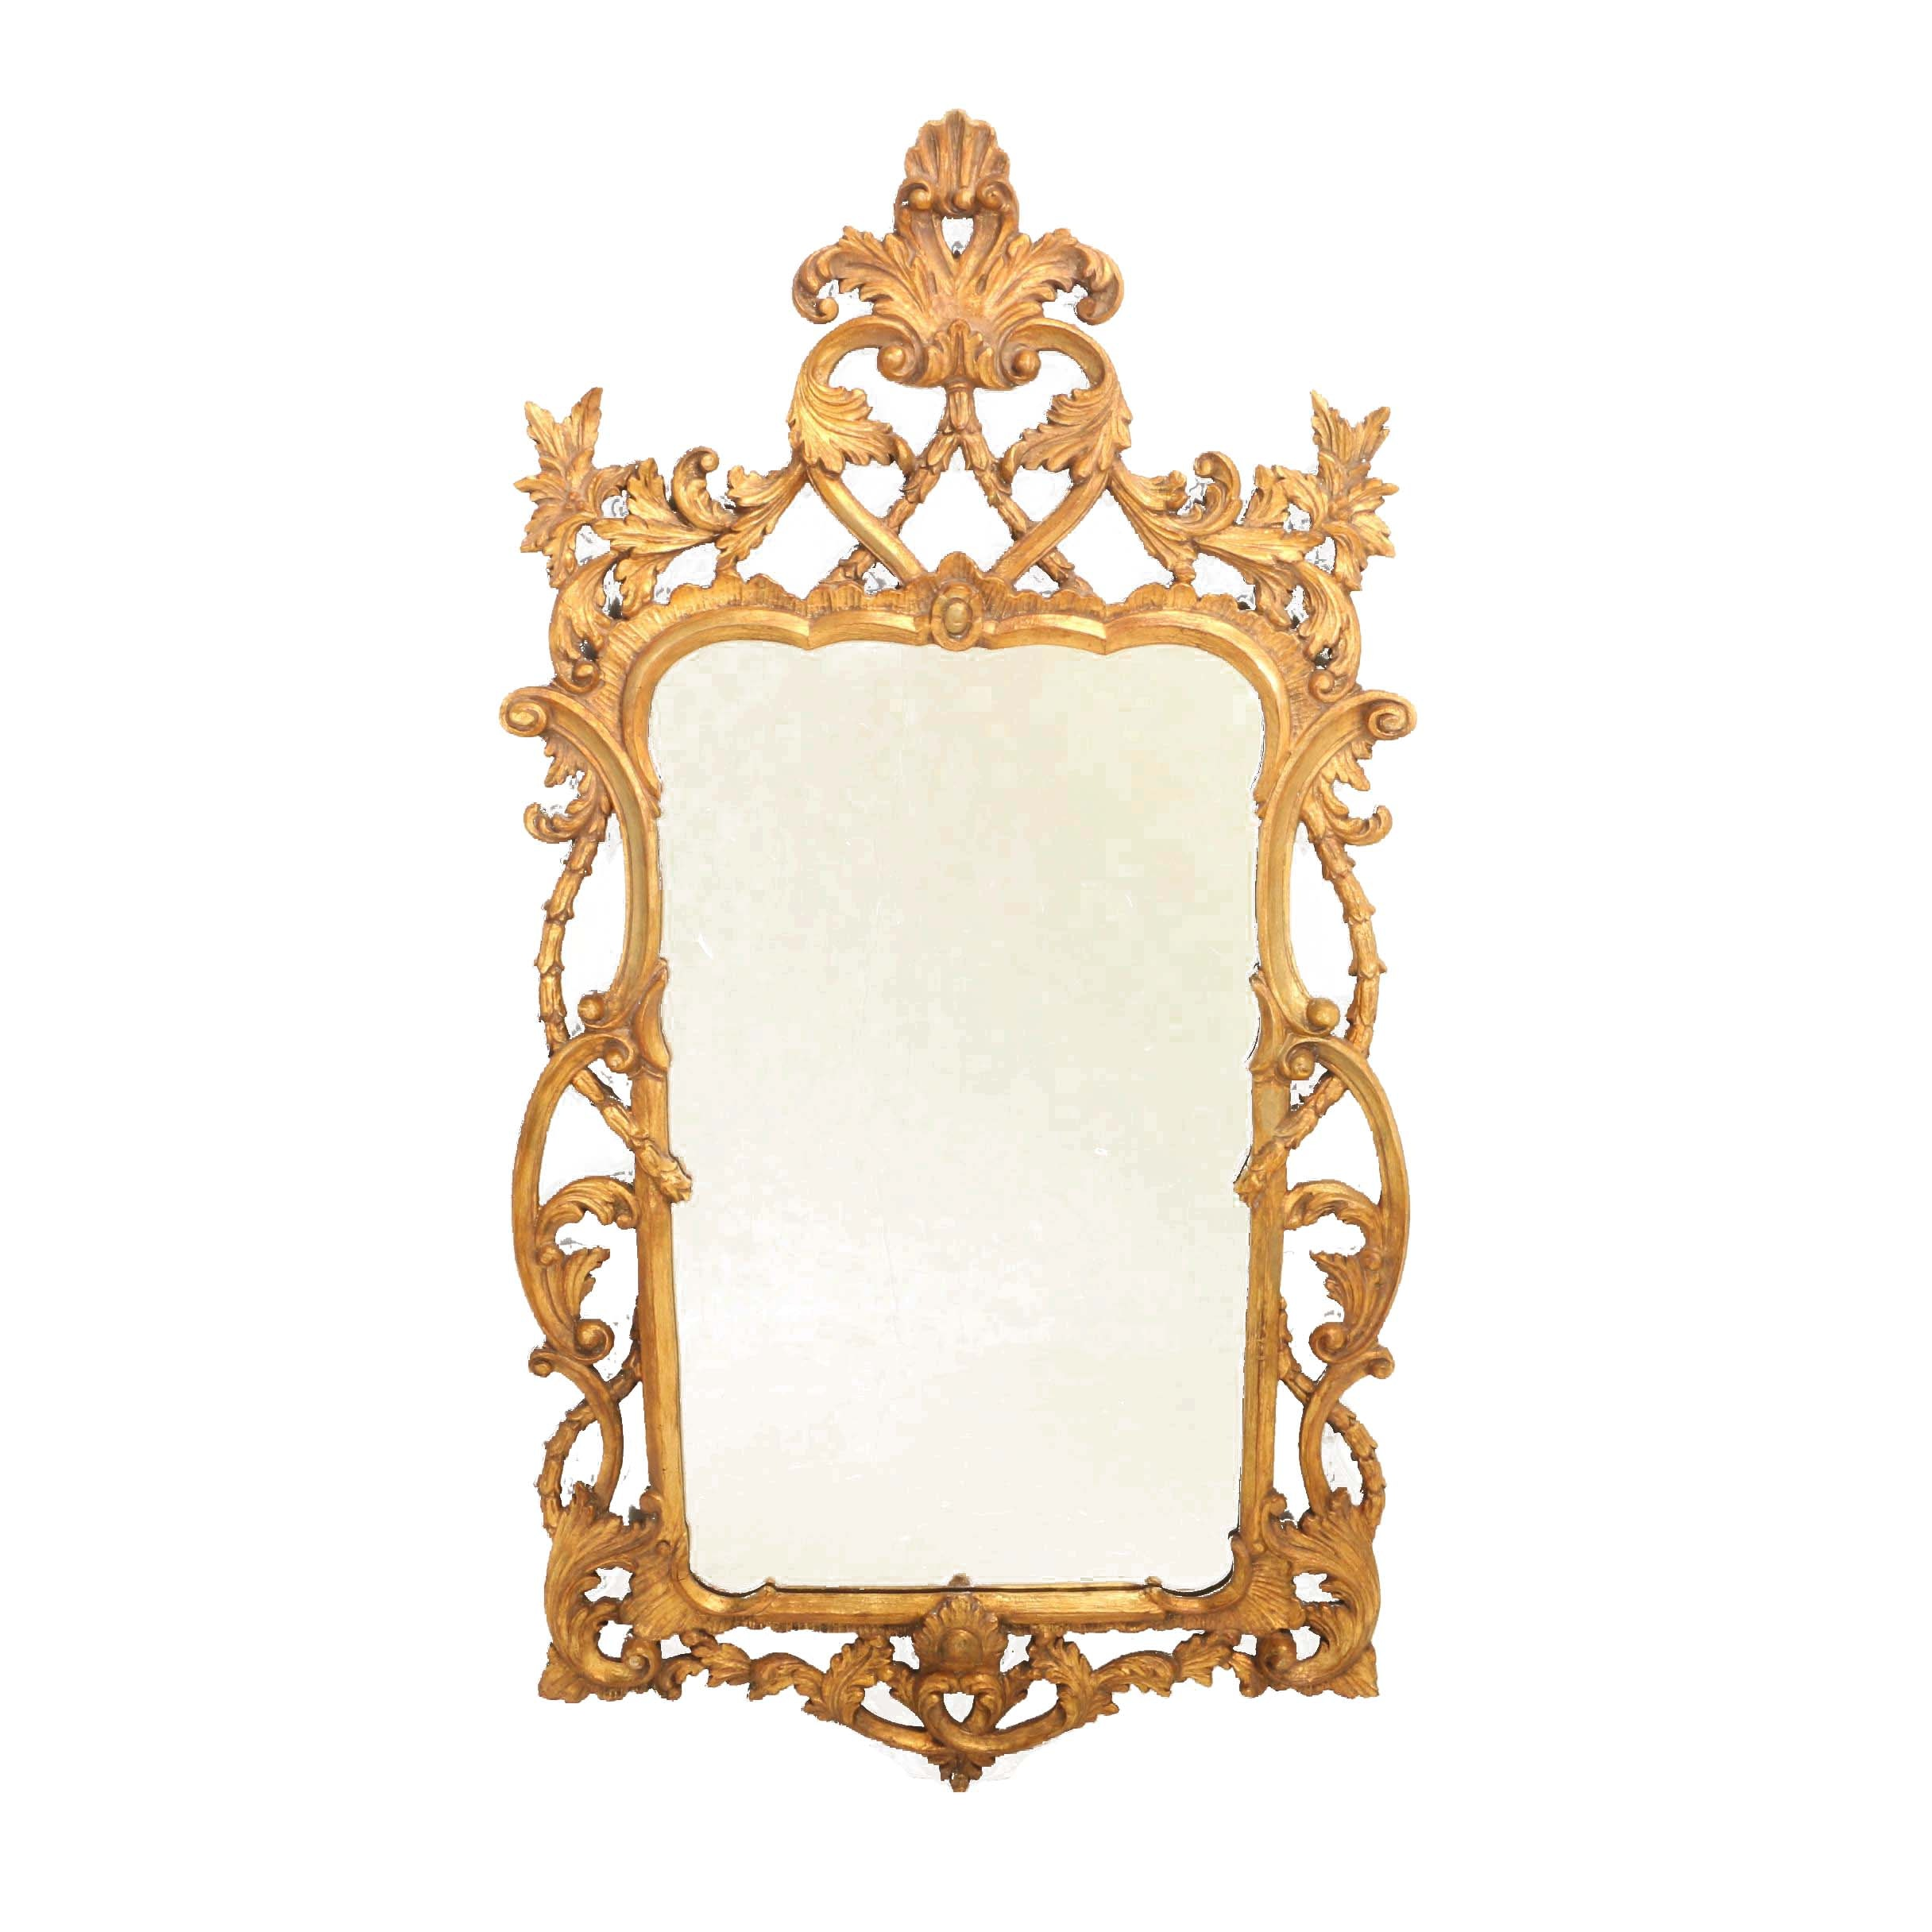 George II Style Giltwood Mirror, 20th Century